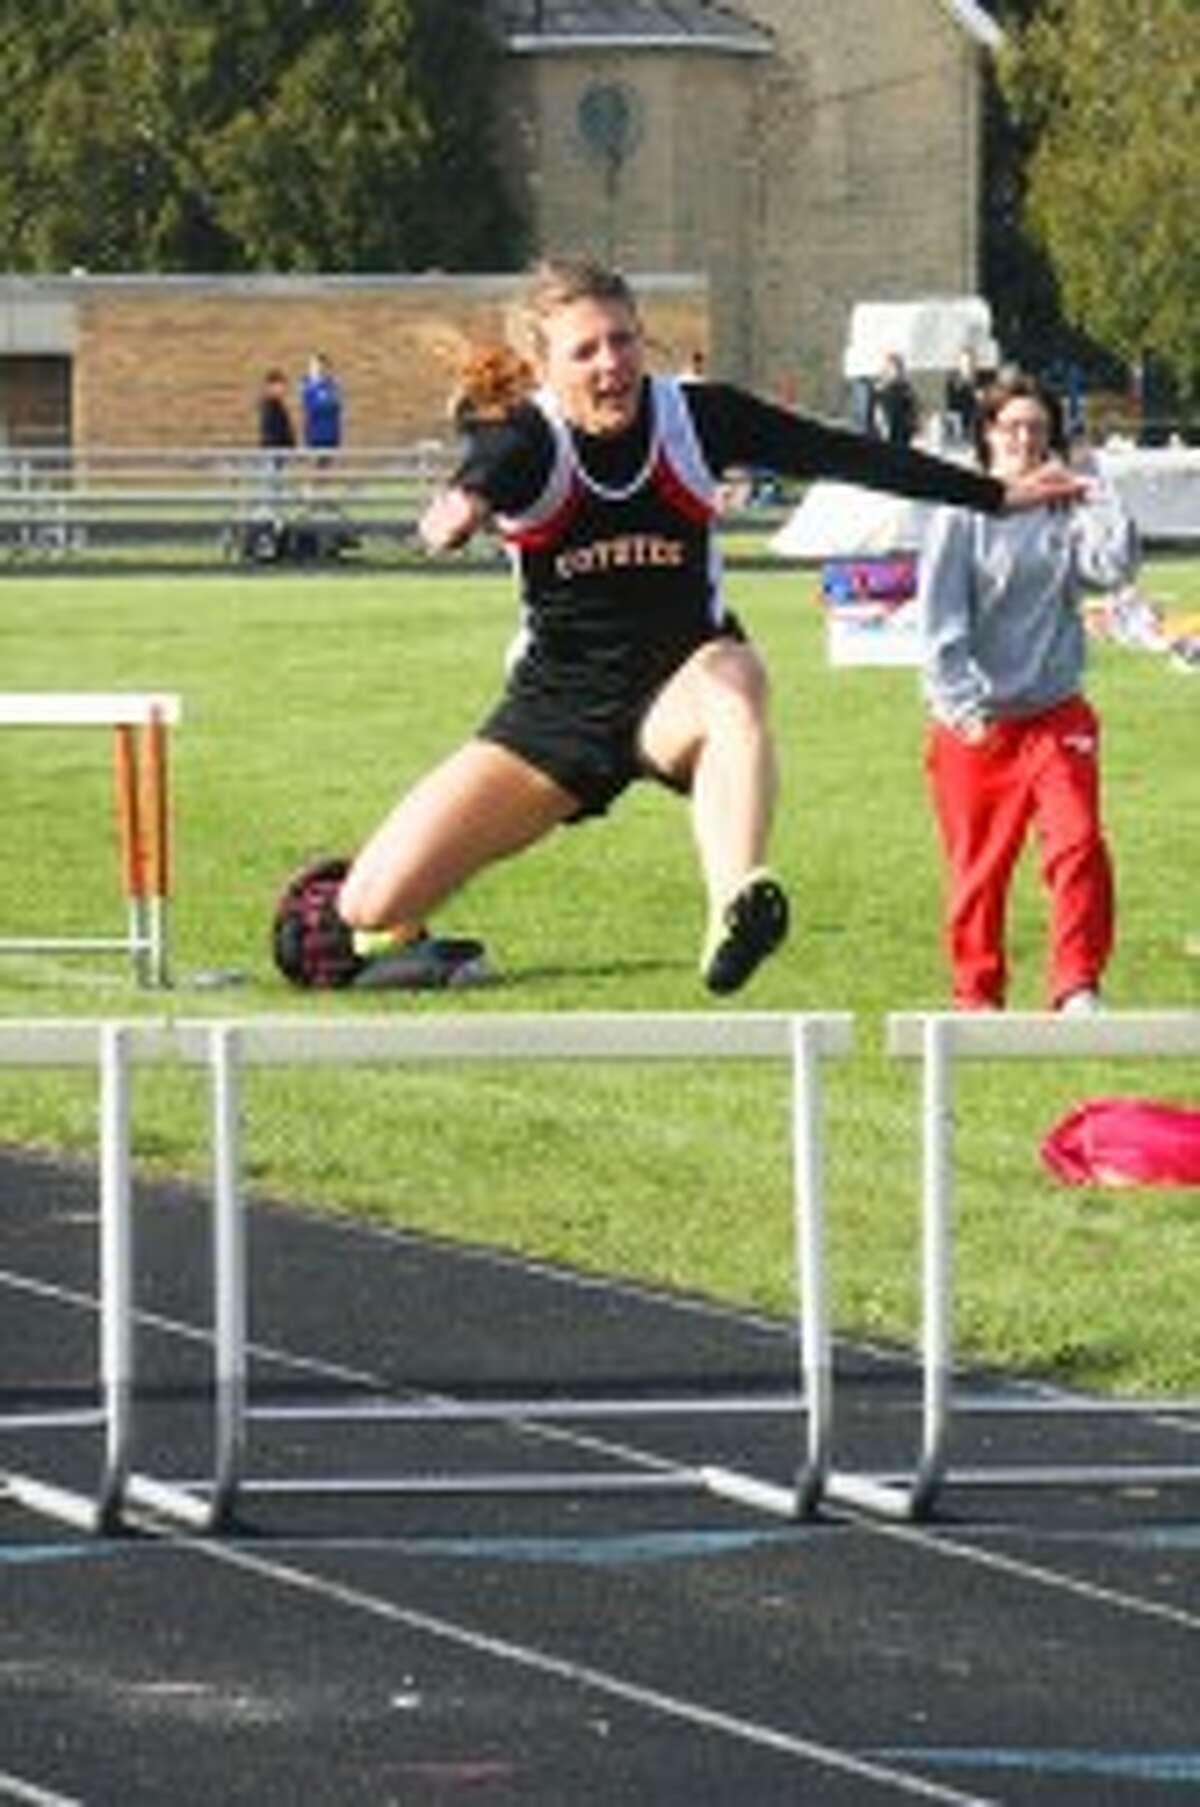 FINALIST: Sami Michell was a four-event state champion last spring. (File photo)